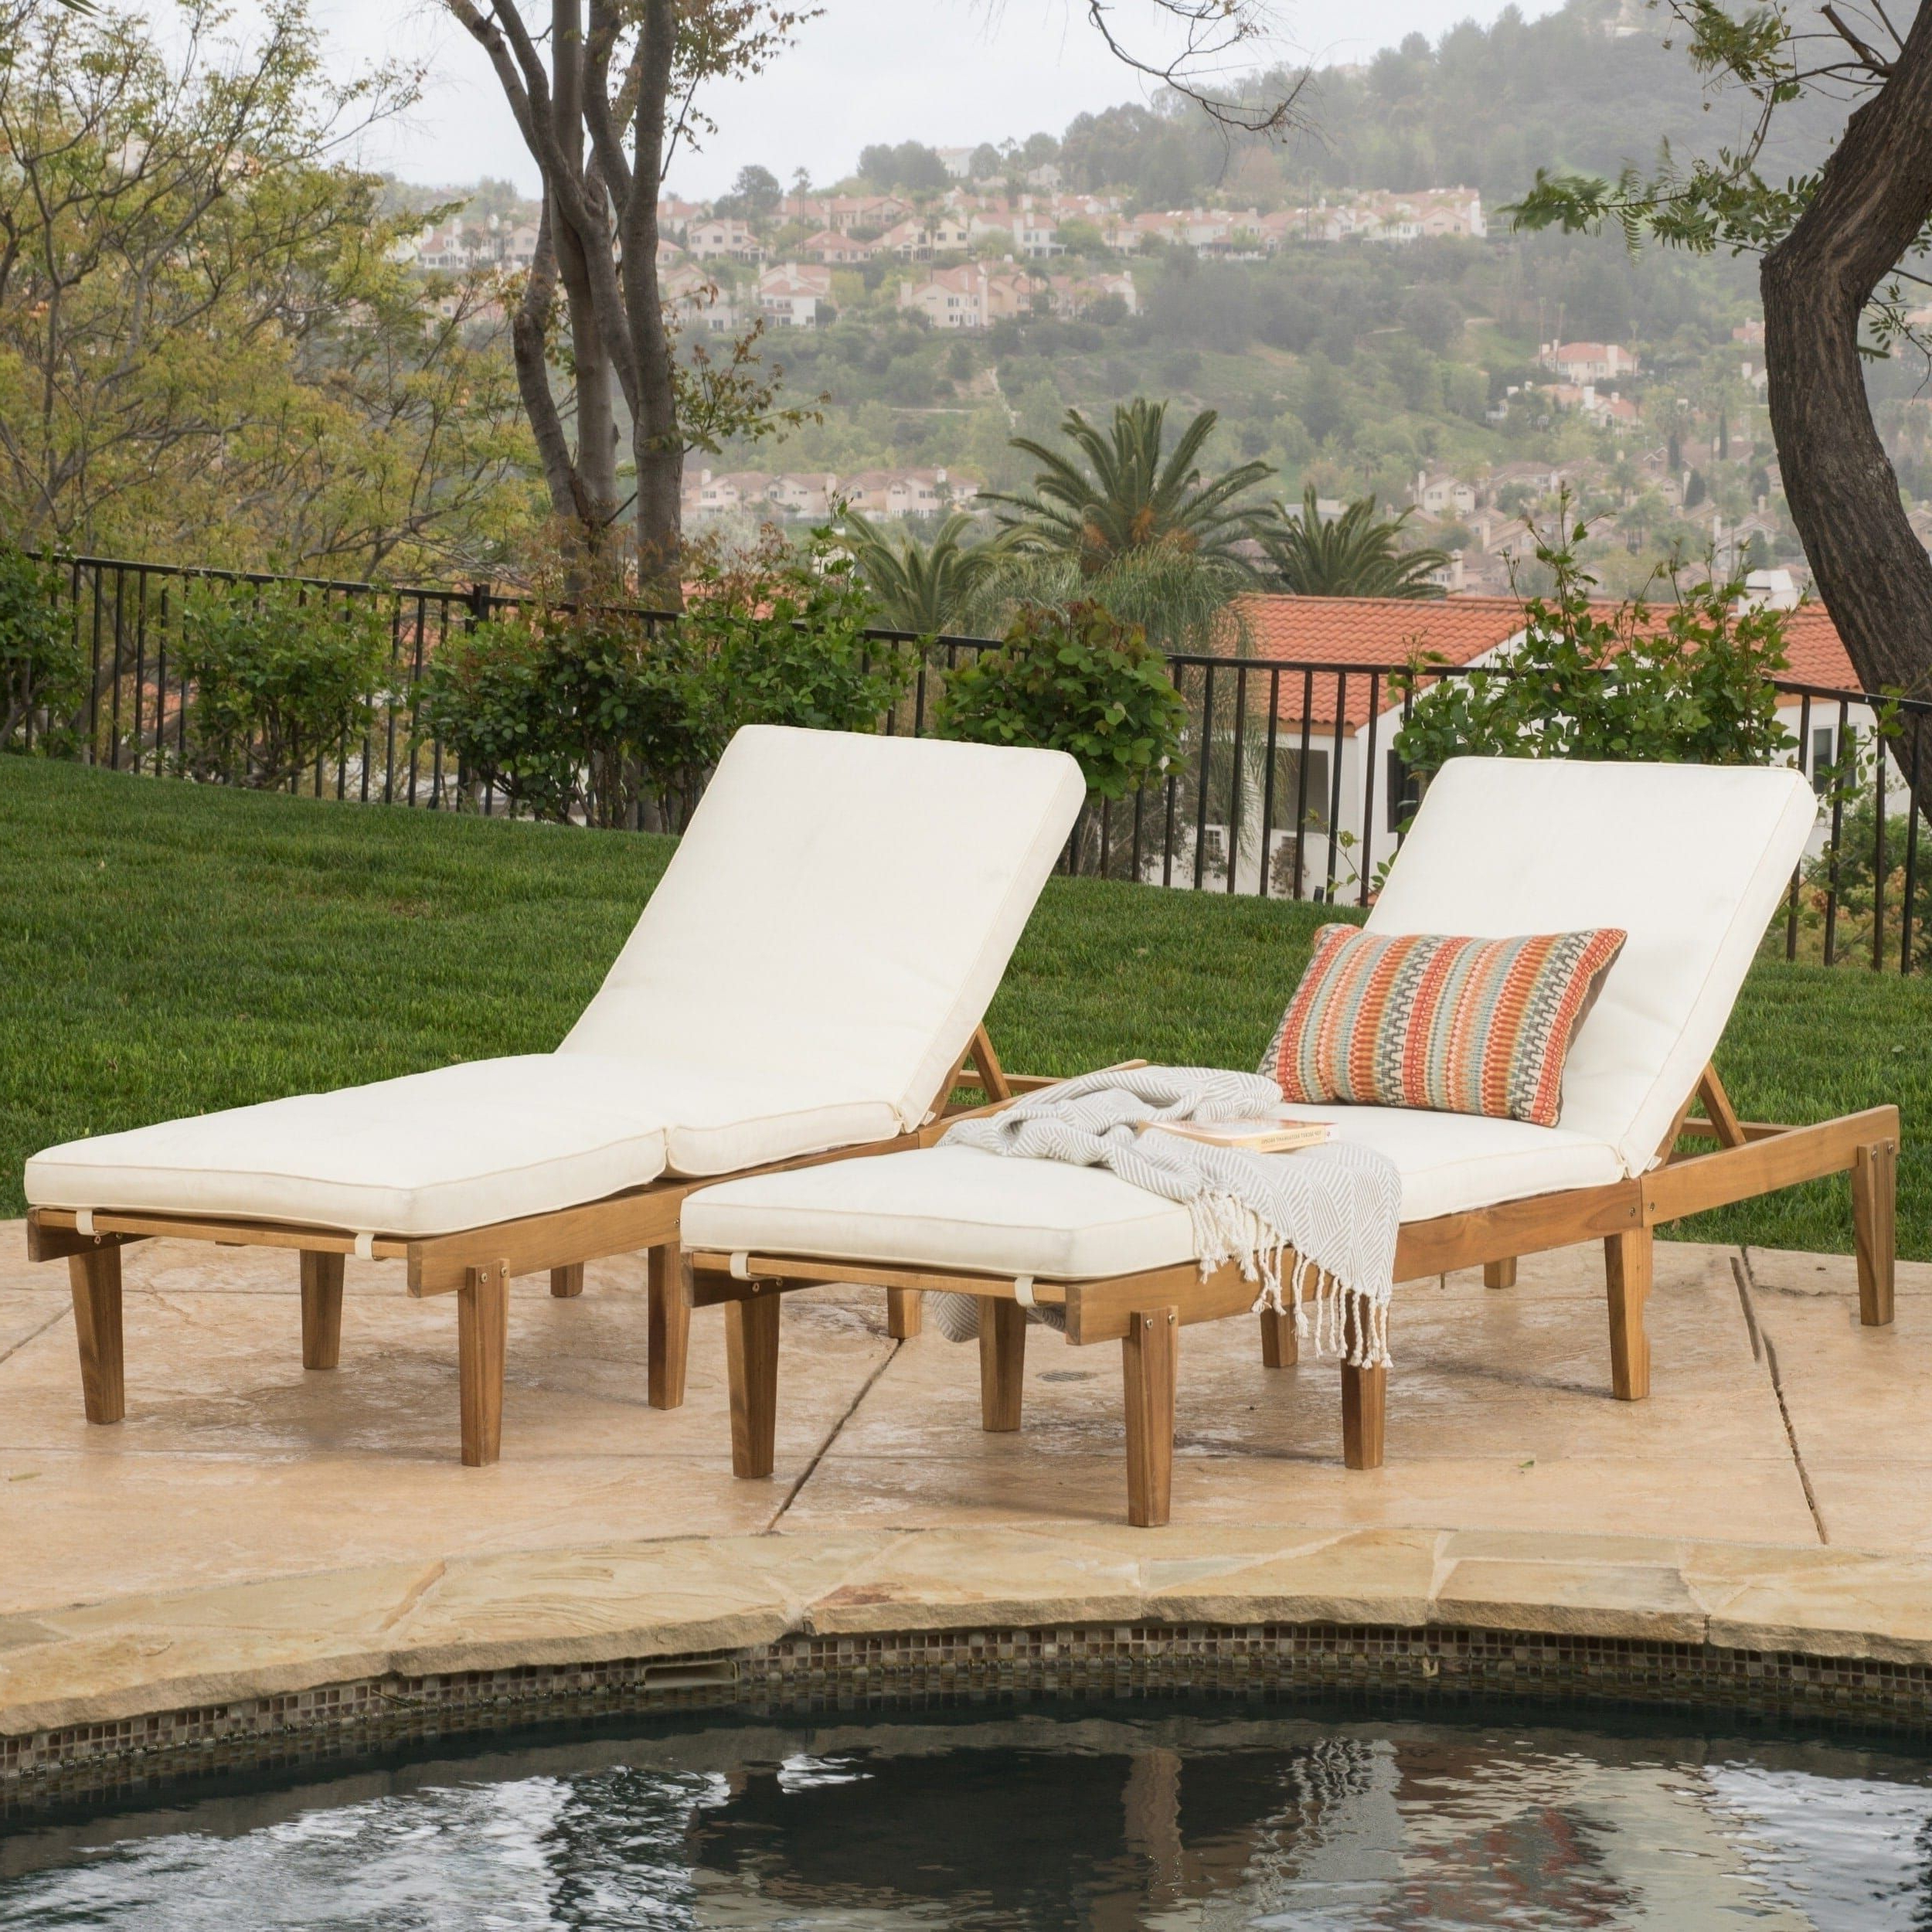 Perla Outdoor Acacia Wood Chaise Lounges Inside Famous Ariana Outdoor Acacia Wood Chaise Lounge With Cushion (Set (Gallery 14 of 25)